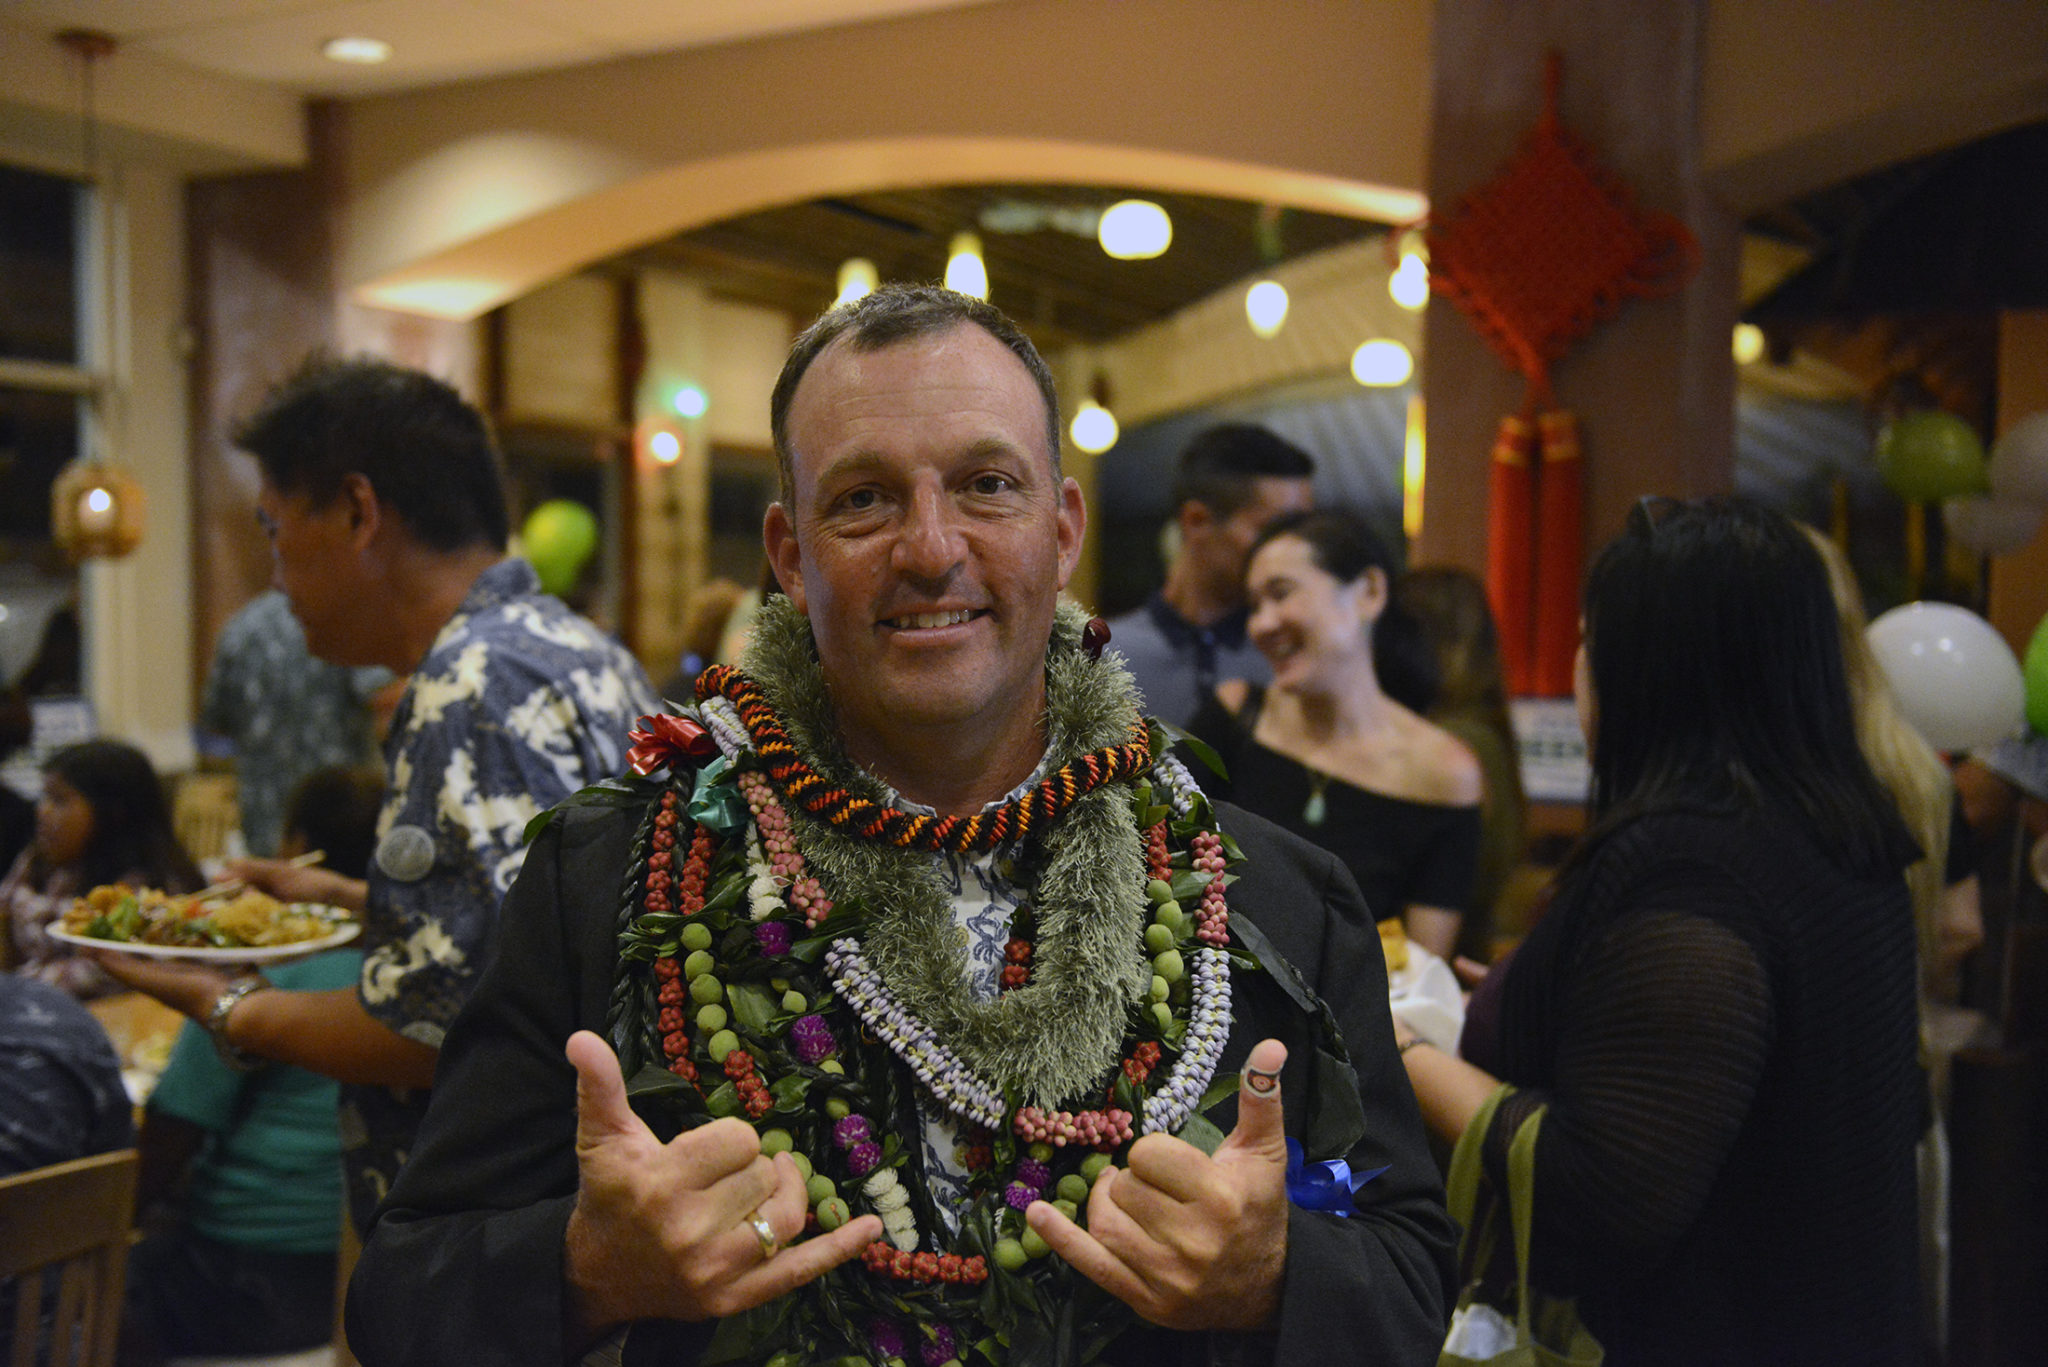 <p>After additional results are released, Green flashes shakas and a smile, even though his lead over state Sen. Jill Tokuda was not insurmountable.</p>